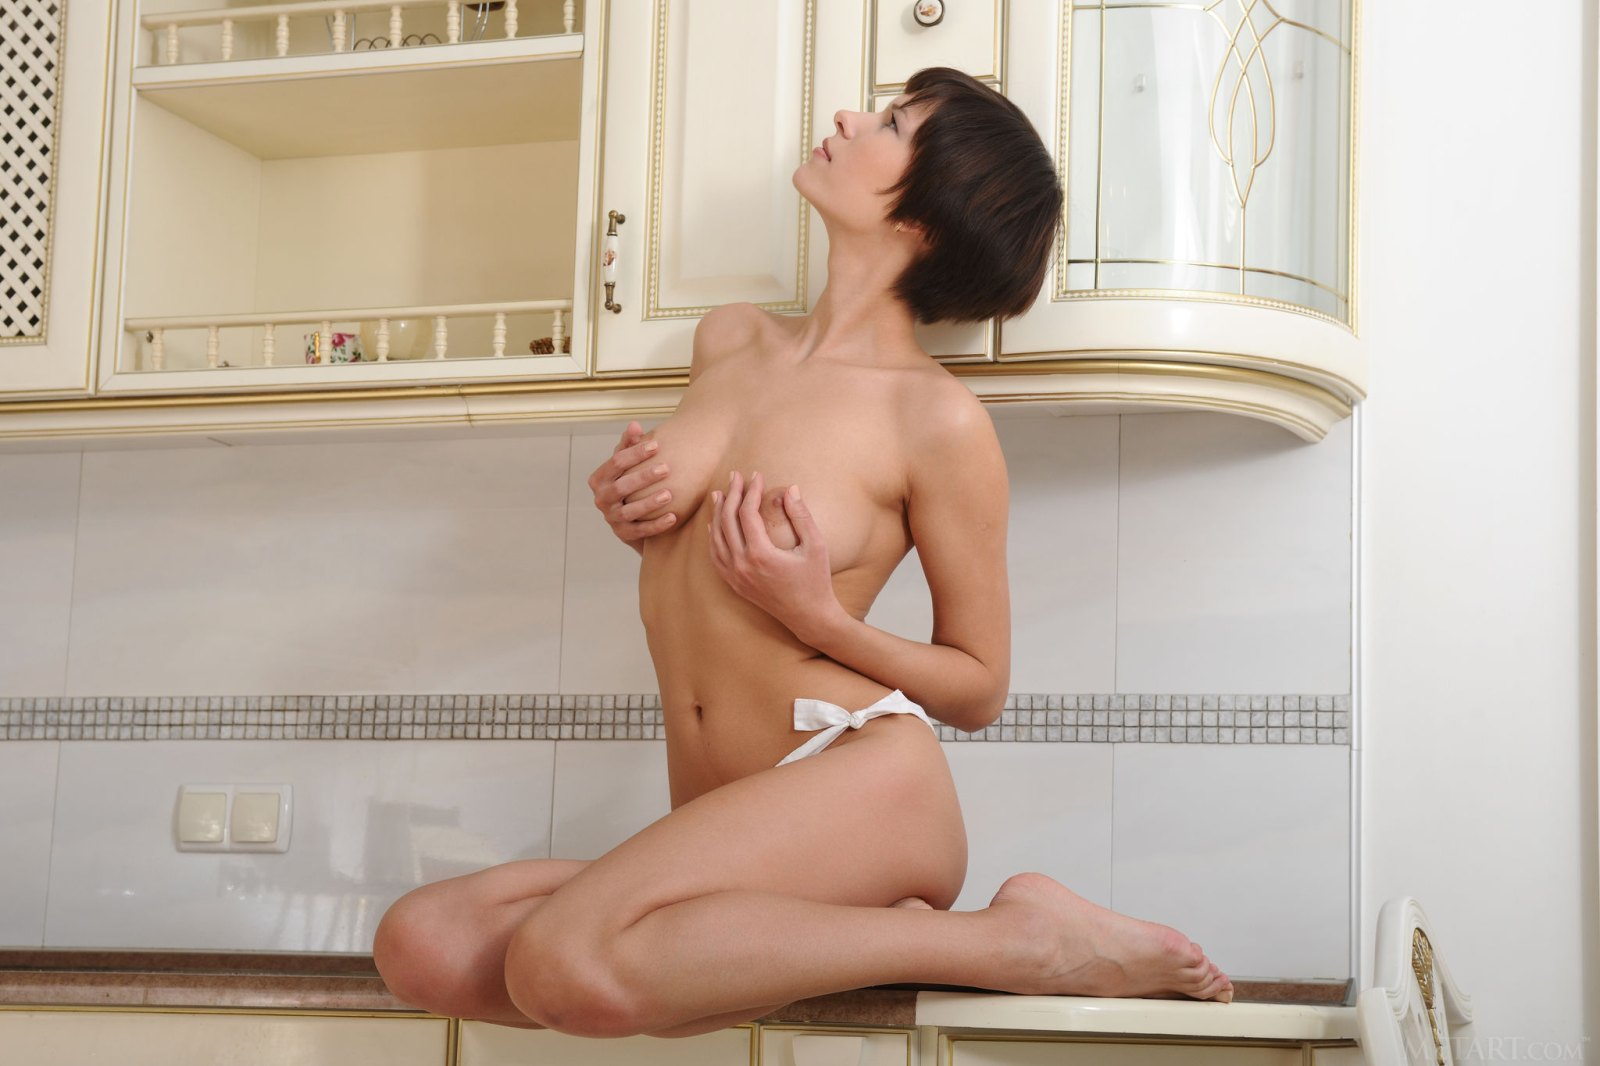 short-haired-brunette-suzanna-a-poses-naked-in-kitchen-12.jpg